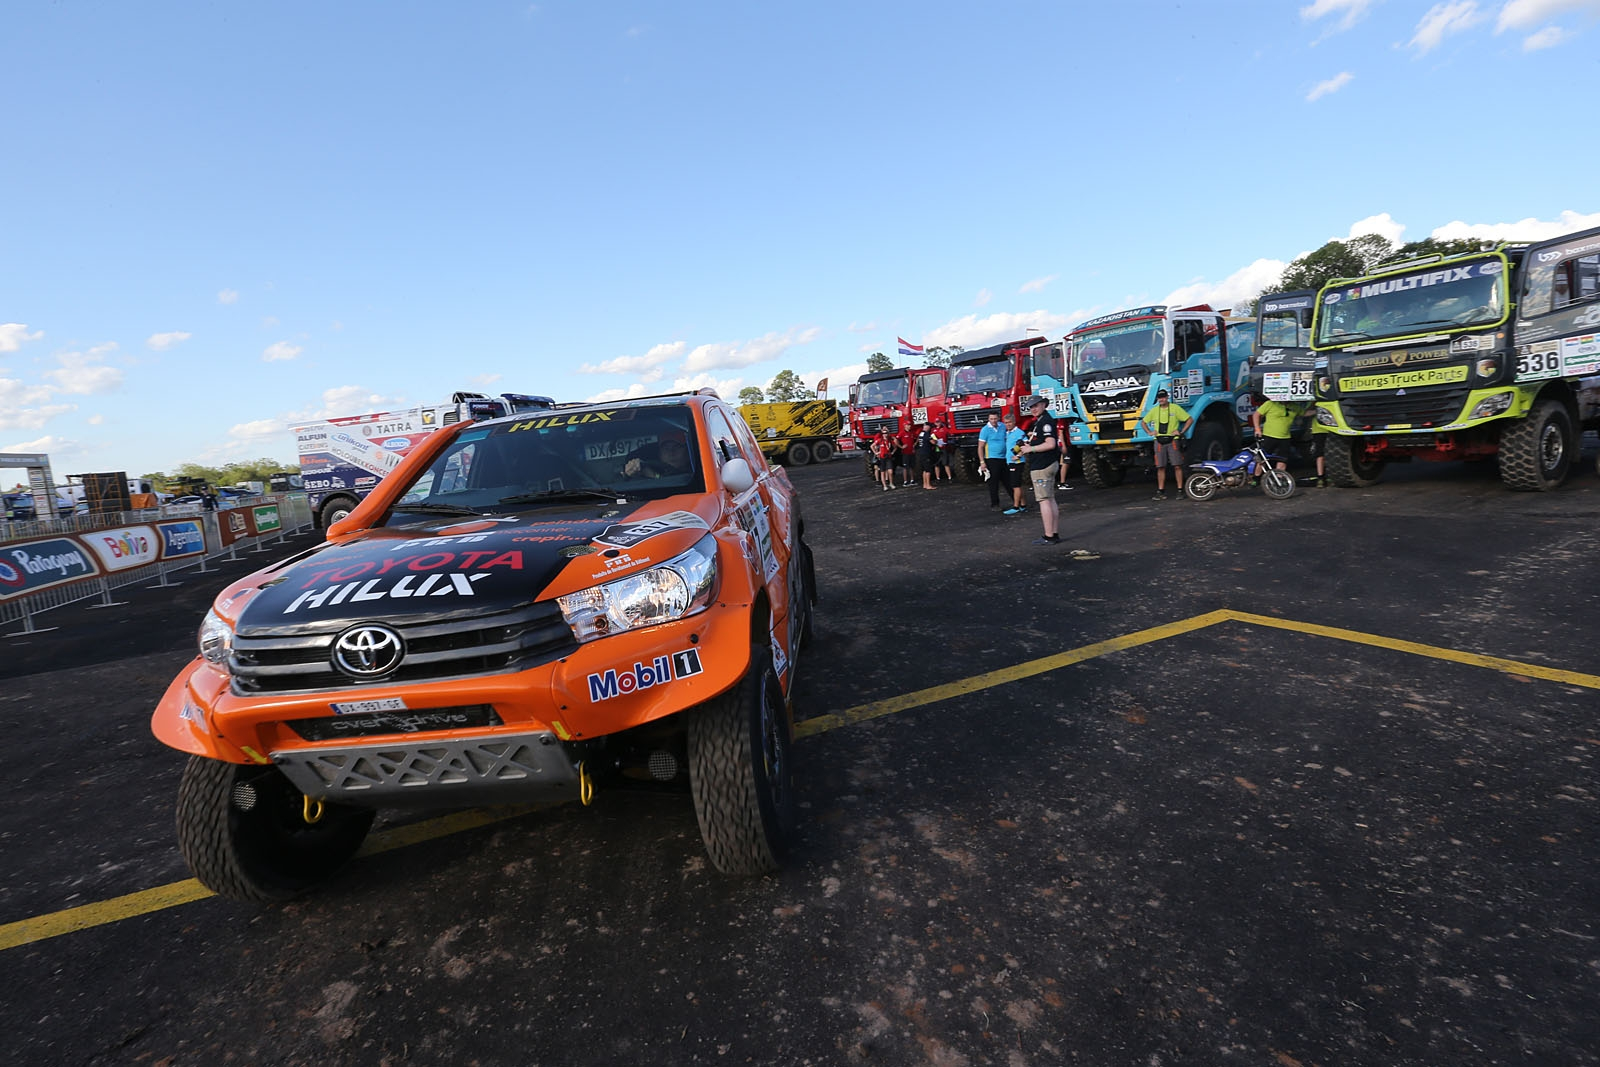 20161231:Asunsion-Paraguay:    TEAM CHABOT  READY FOR THE DAKAR 2017